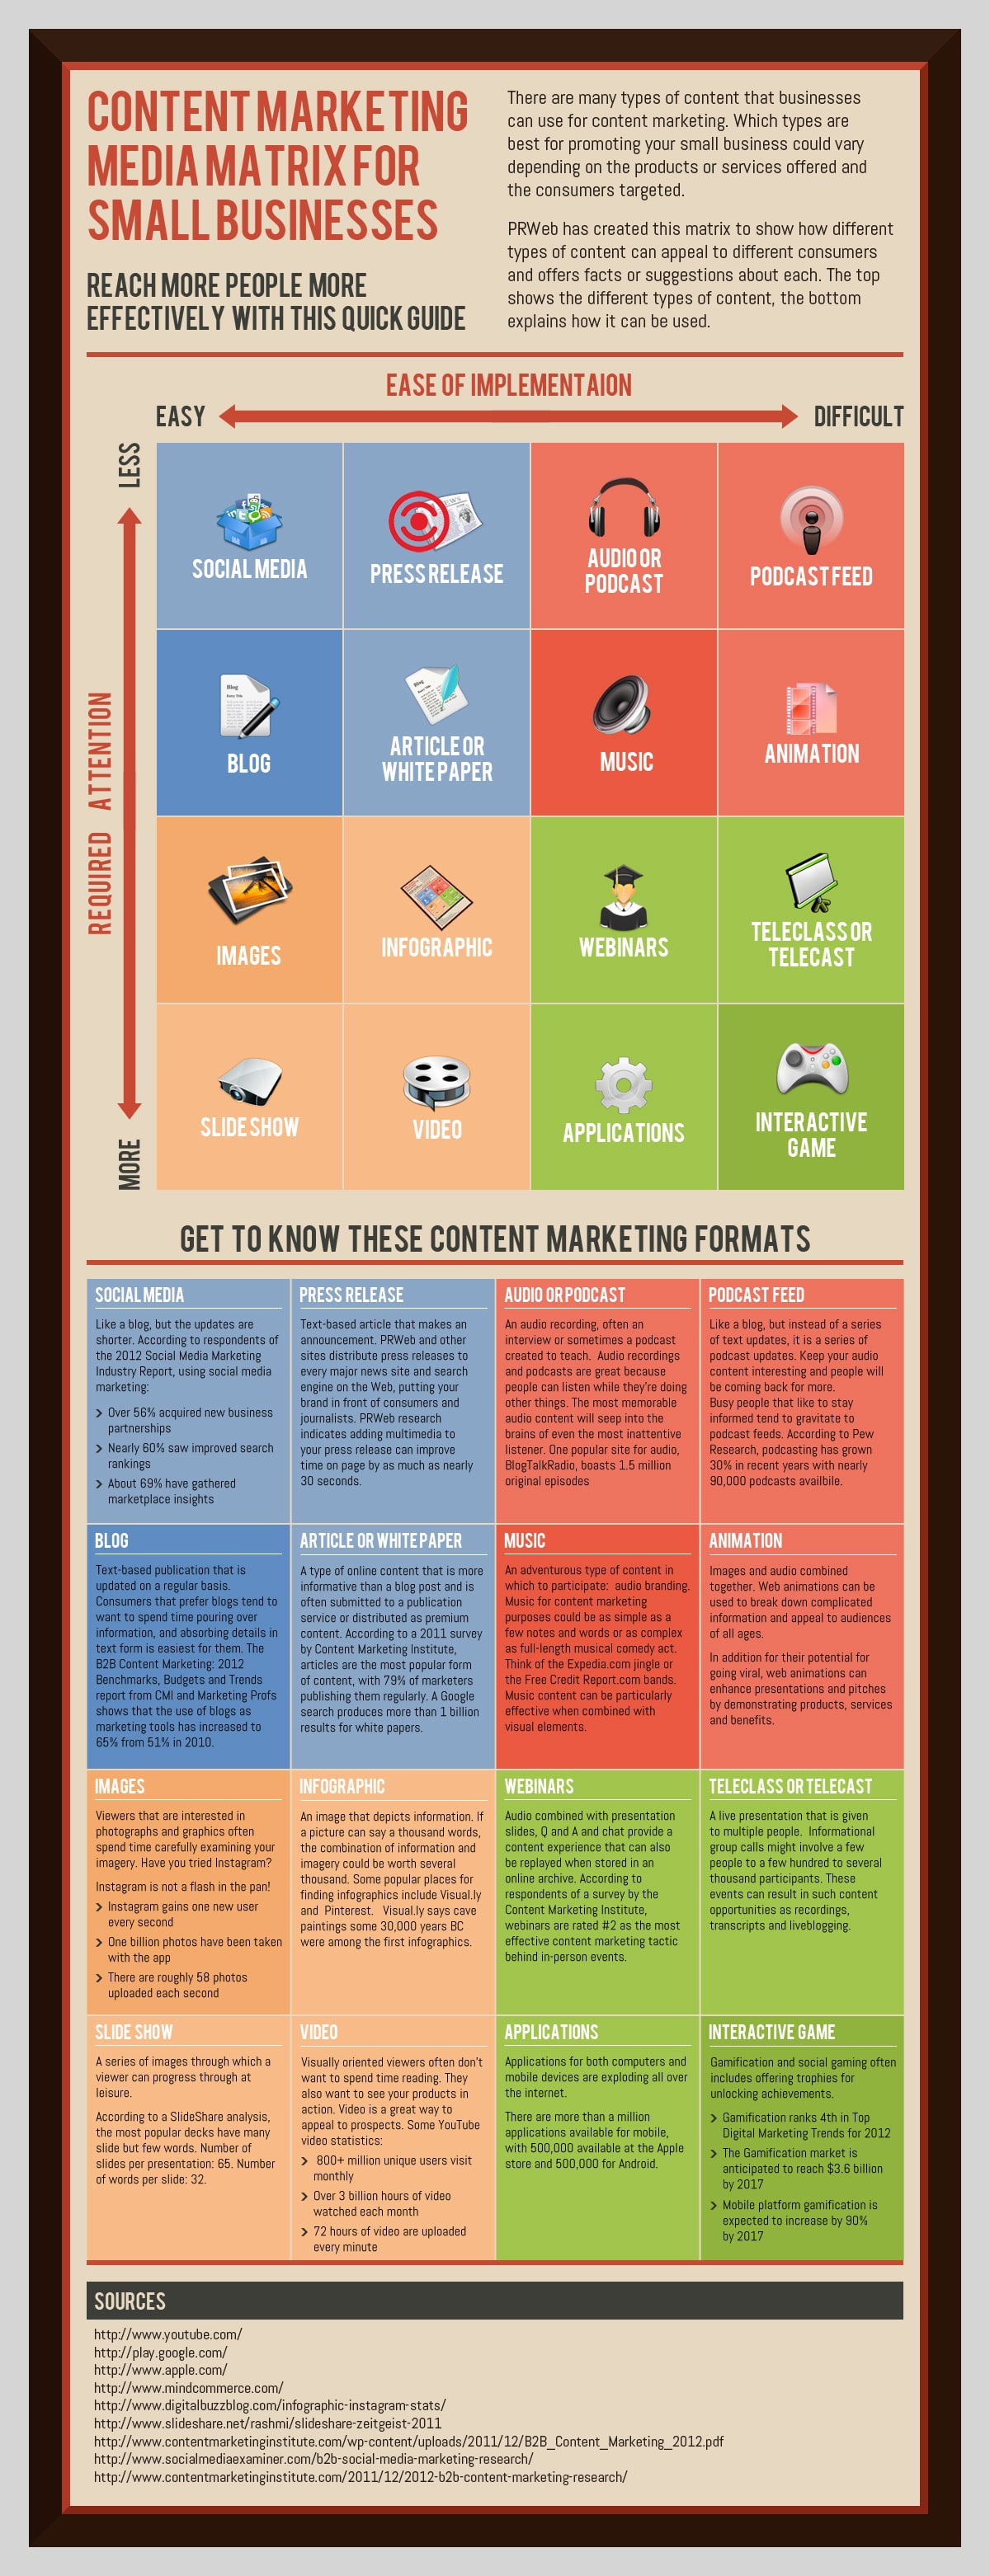 marketing-content-impact-guide-infographic